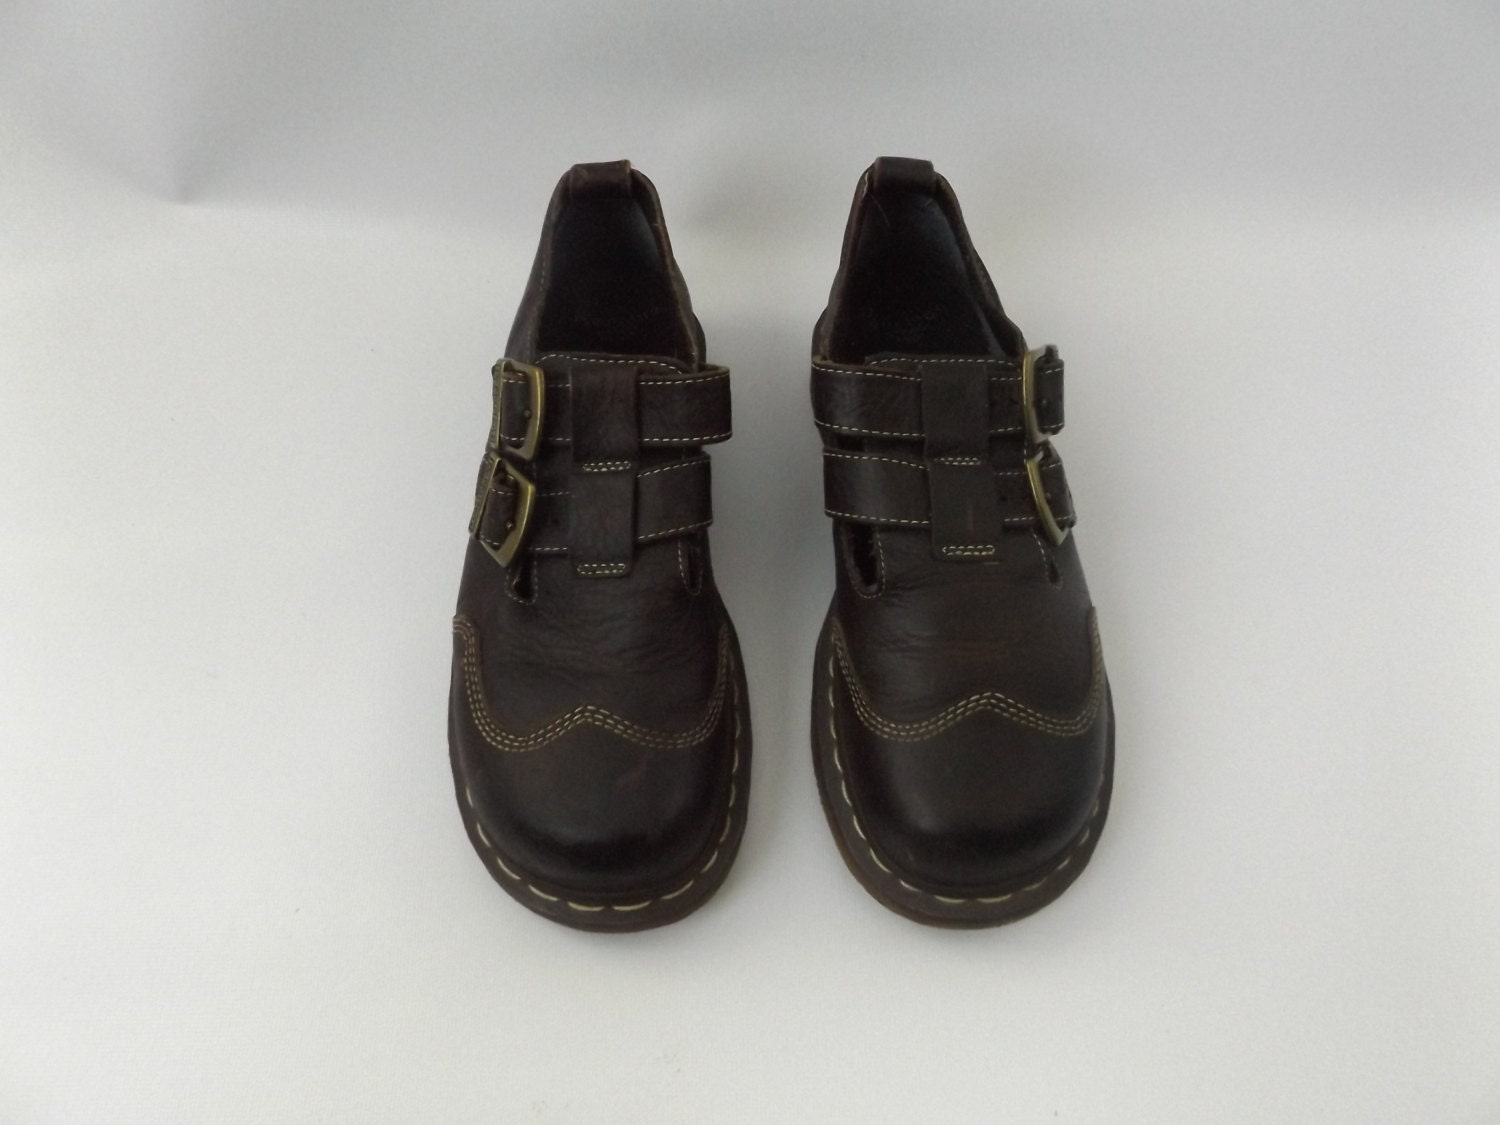 Dr Marten Mary Jane Shoes Brown Leather Double Buckle 90s